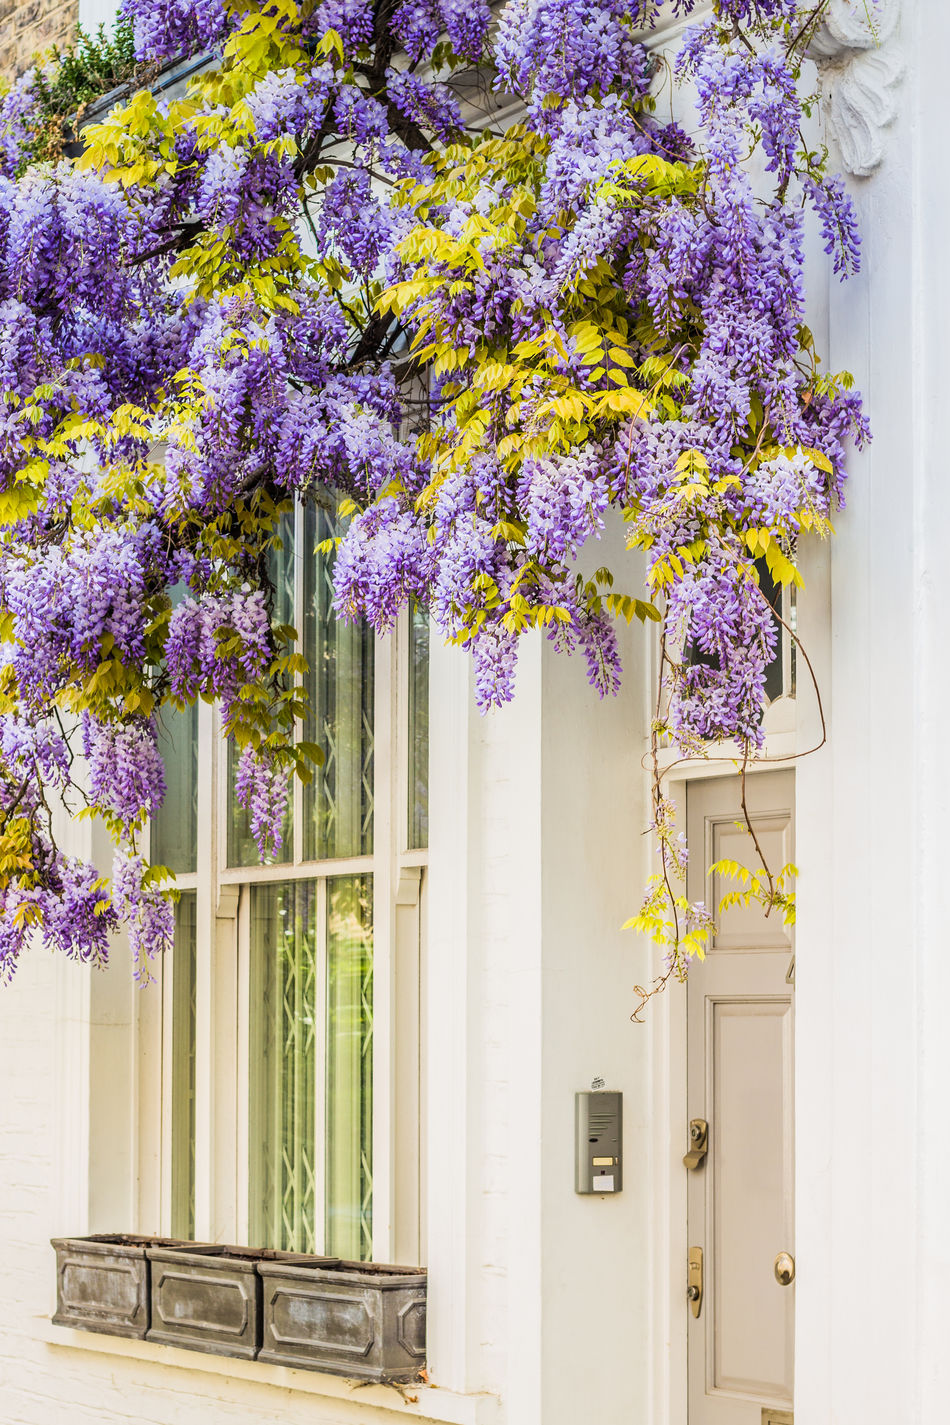 Beautiful flowers draped over a doorway in central London. Springtime in Bloom Architecture Beauty In Nature Built Structure City Life Close-up Day Decoration With Flowers Door Flower Flowers Flowers,Plants & Garden Flowers_collection Freshness Growth Home House Houses And Windows Nature No People Outdoors Plant Purple Spring Flowers Springtime Urban